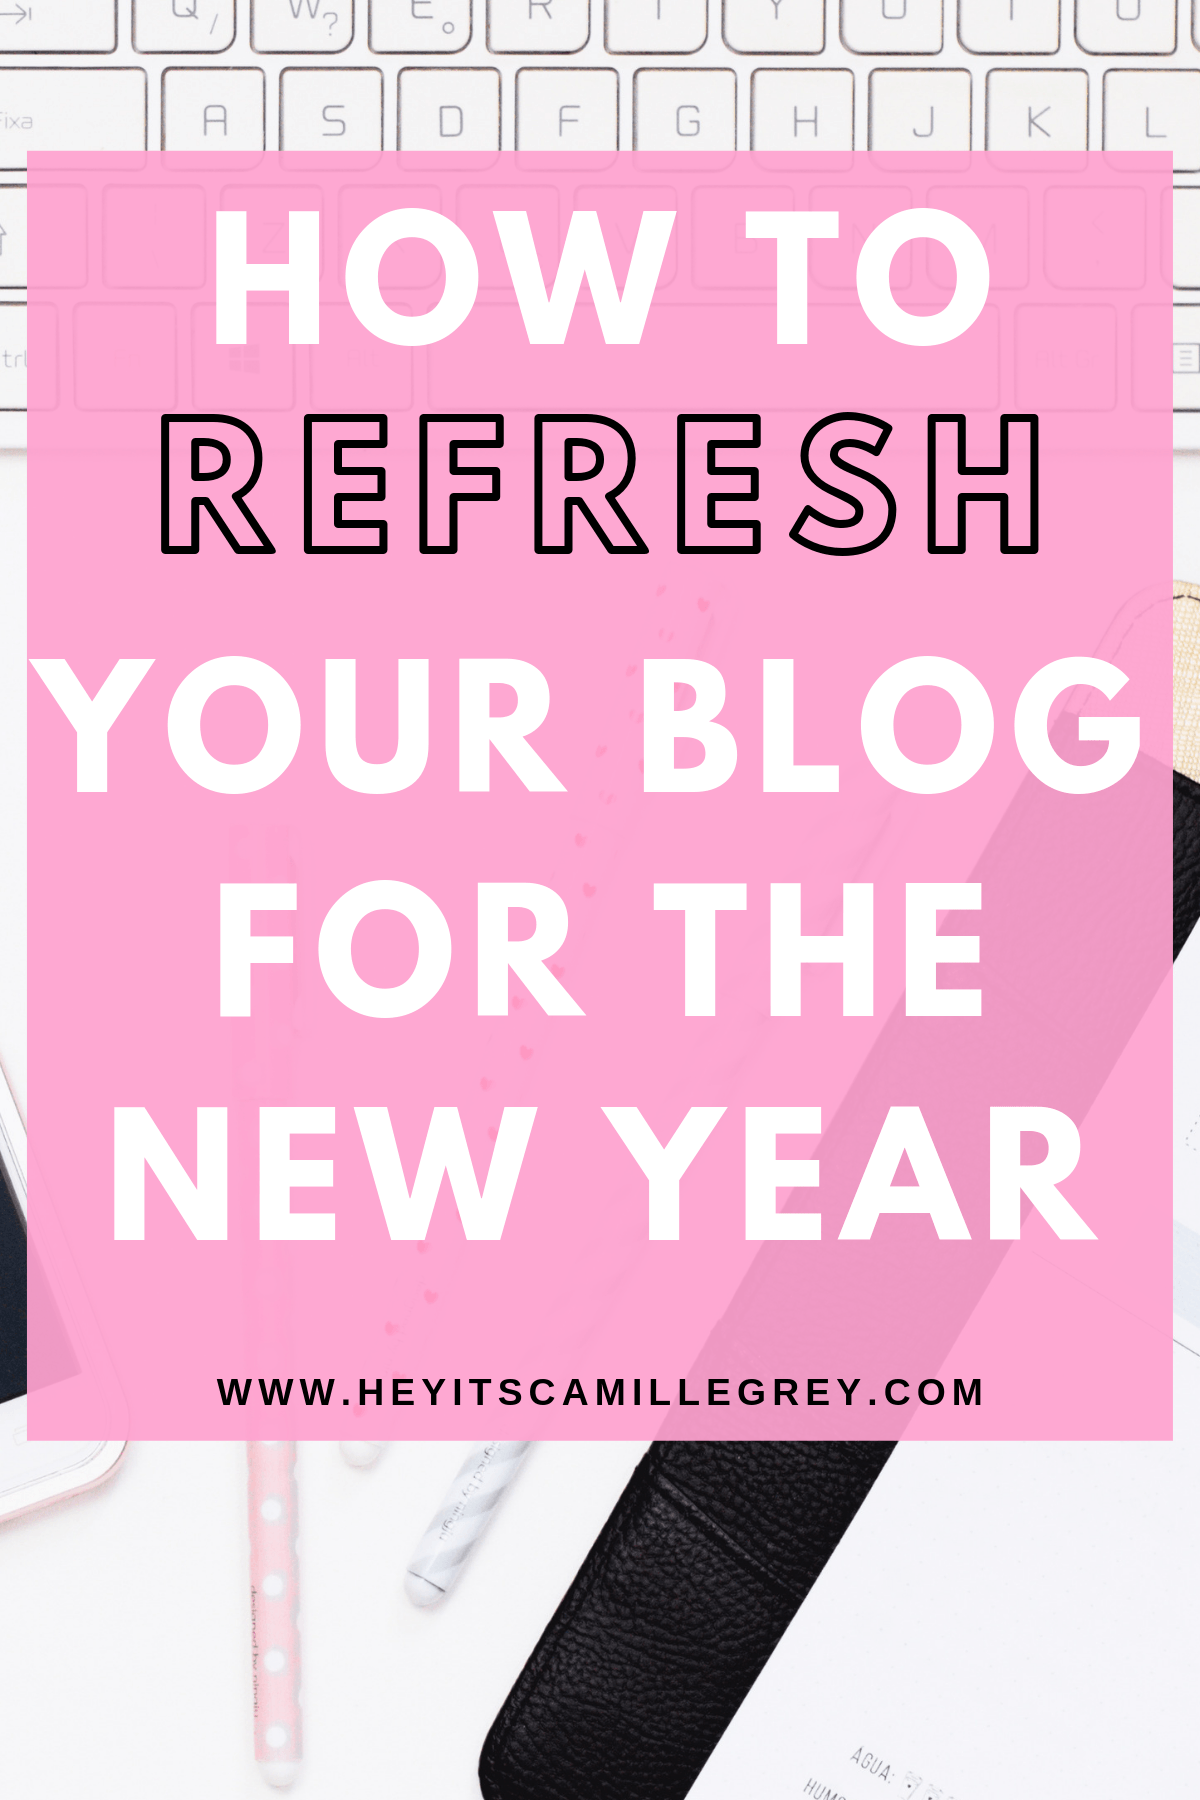 How to Refresh Your Blog for the New Year | Hey Its Camille Grey